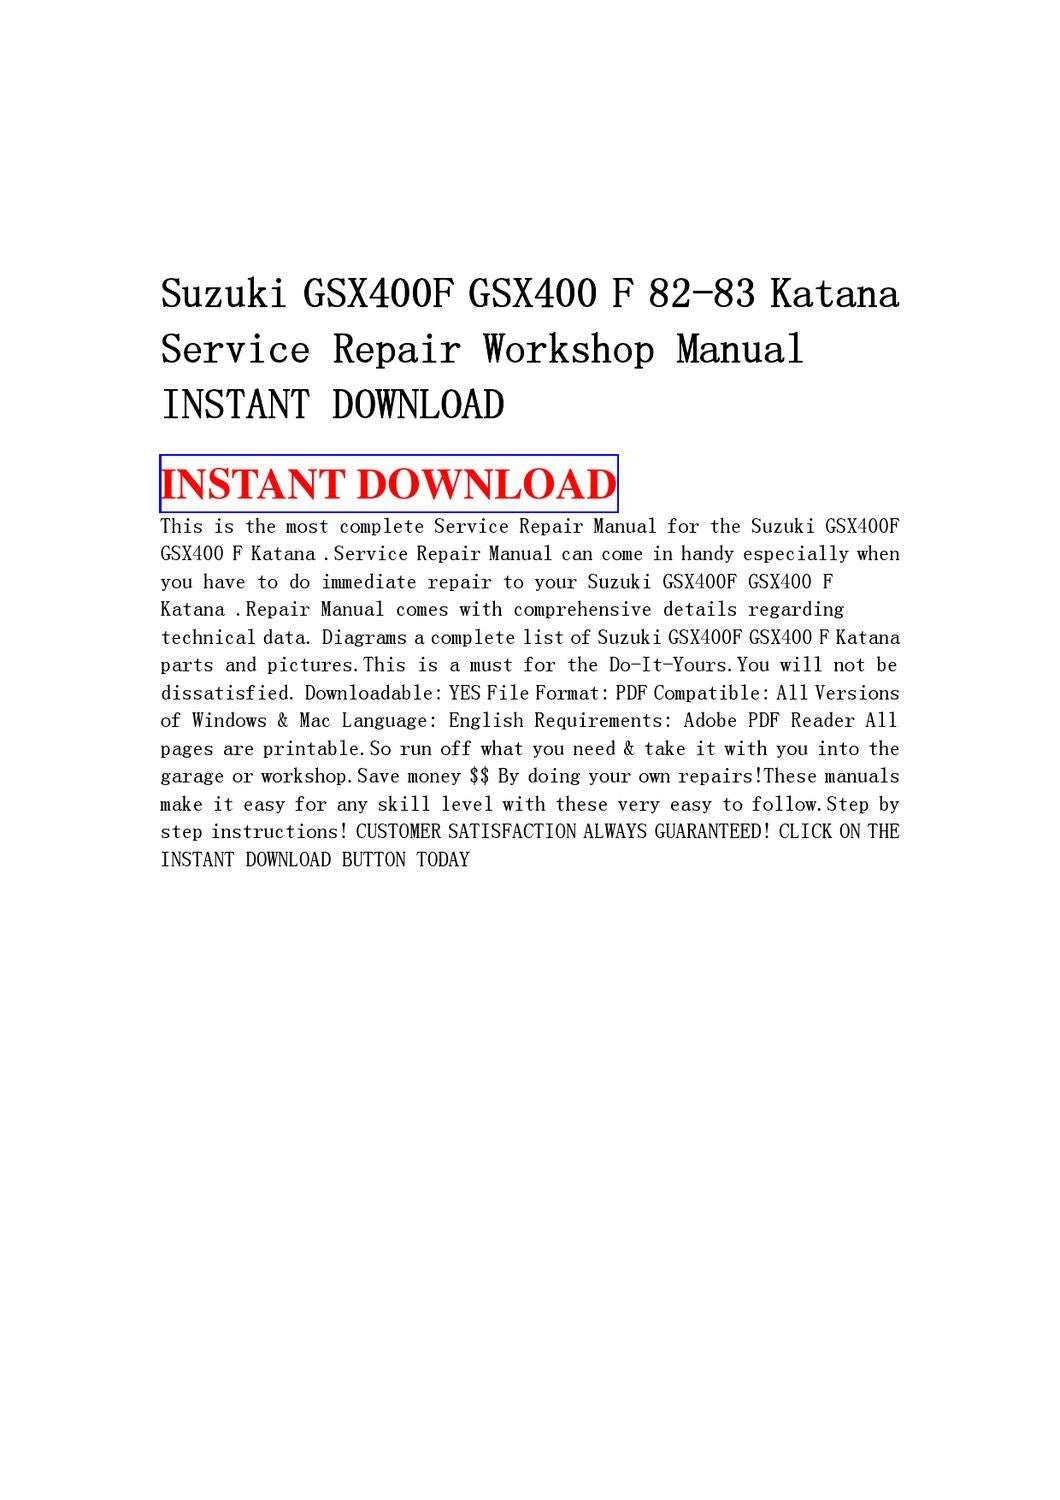 Suzuki GSX400F GSX400 F 82-83 Katana Service Repair Workshop Manual INSTANT  DOWNLOAD by sdf saf - issuu